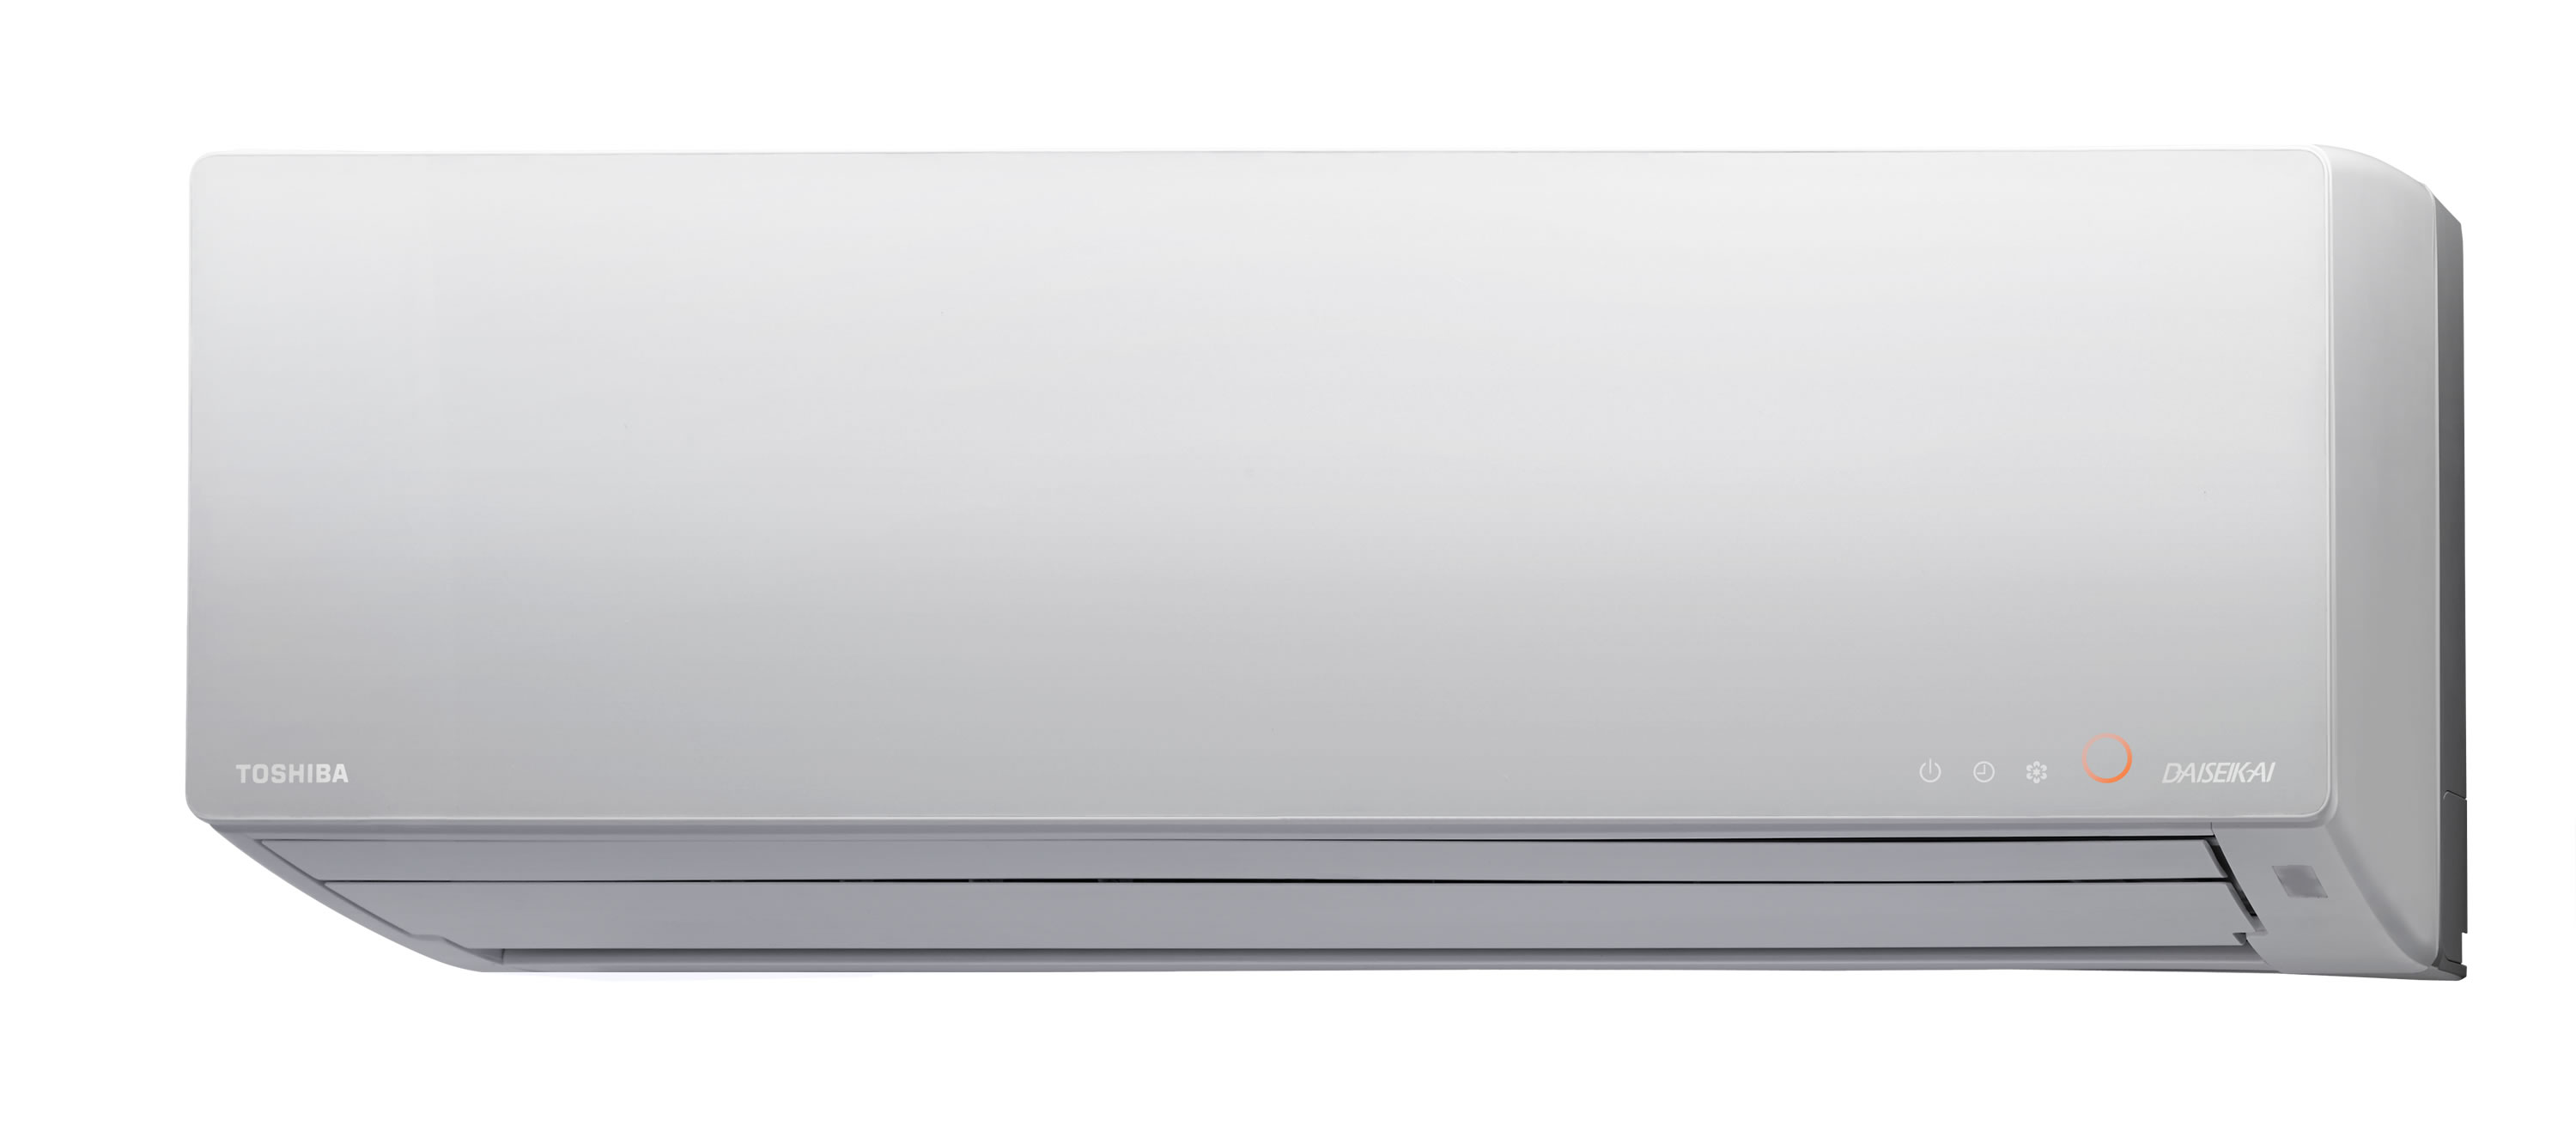 Toshiba Launches New Generation Of Premium Daiseikai Air Conditioning For U on heating and cooling units